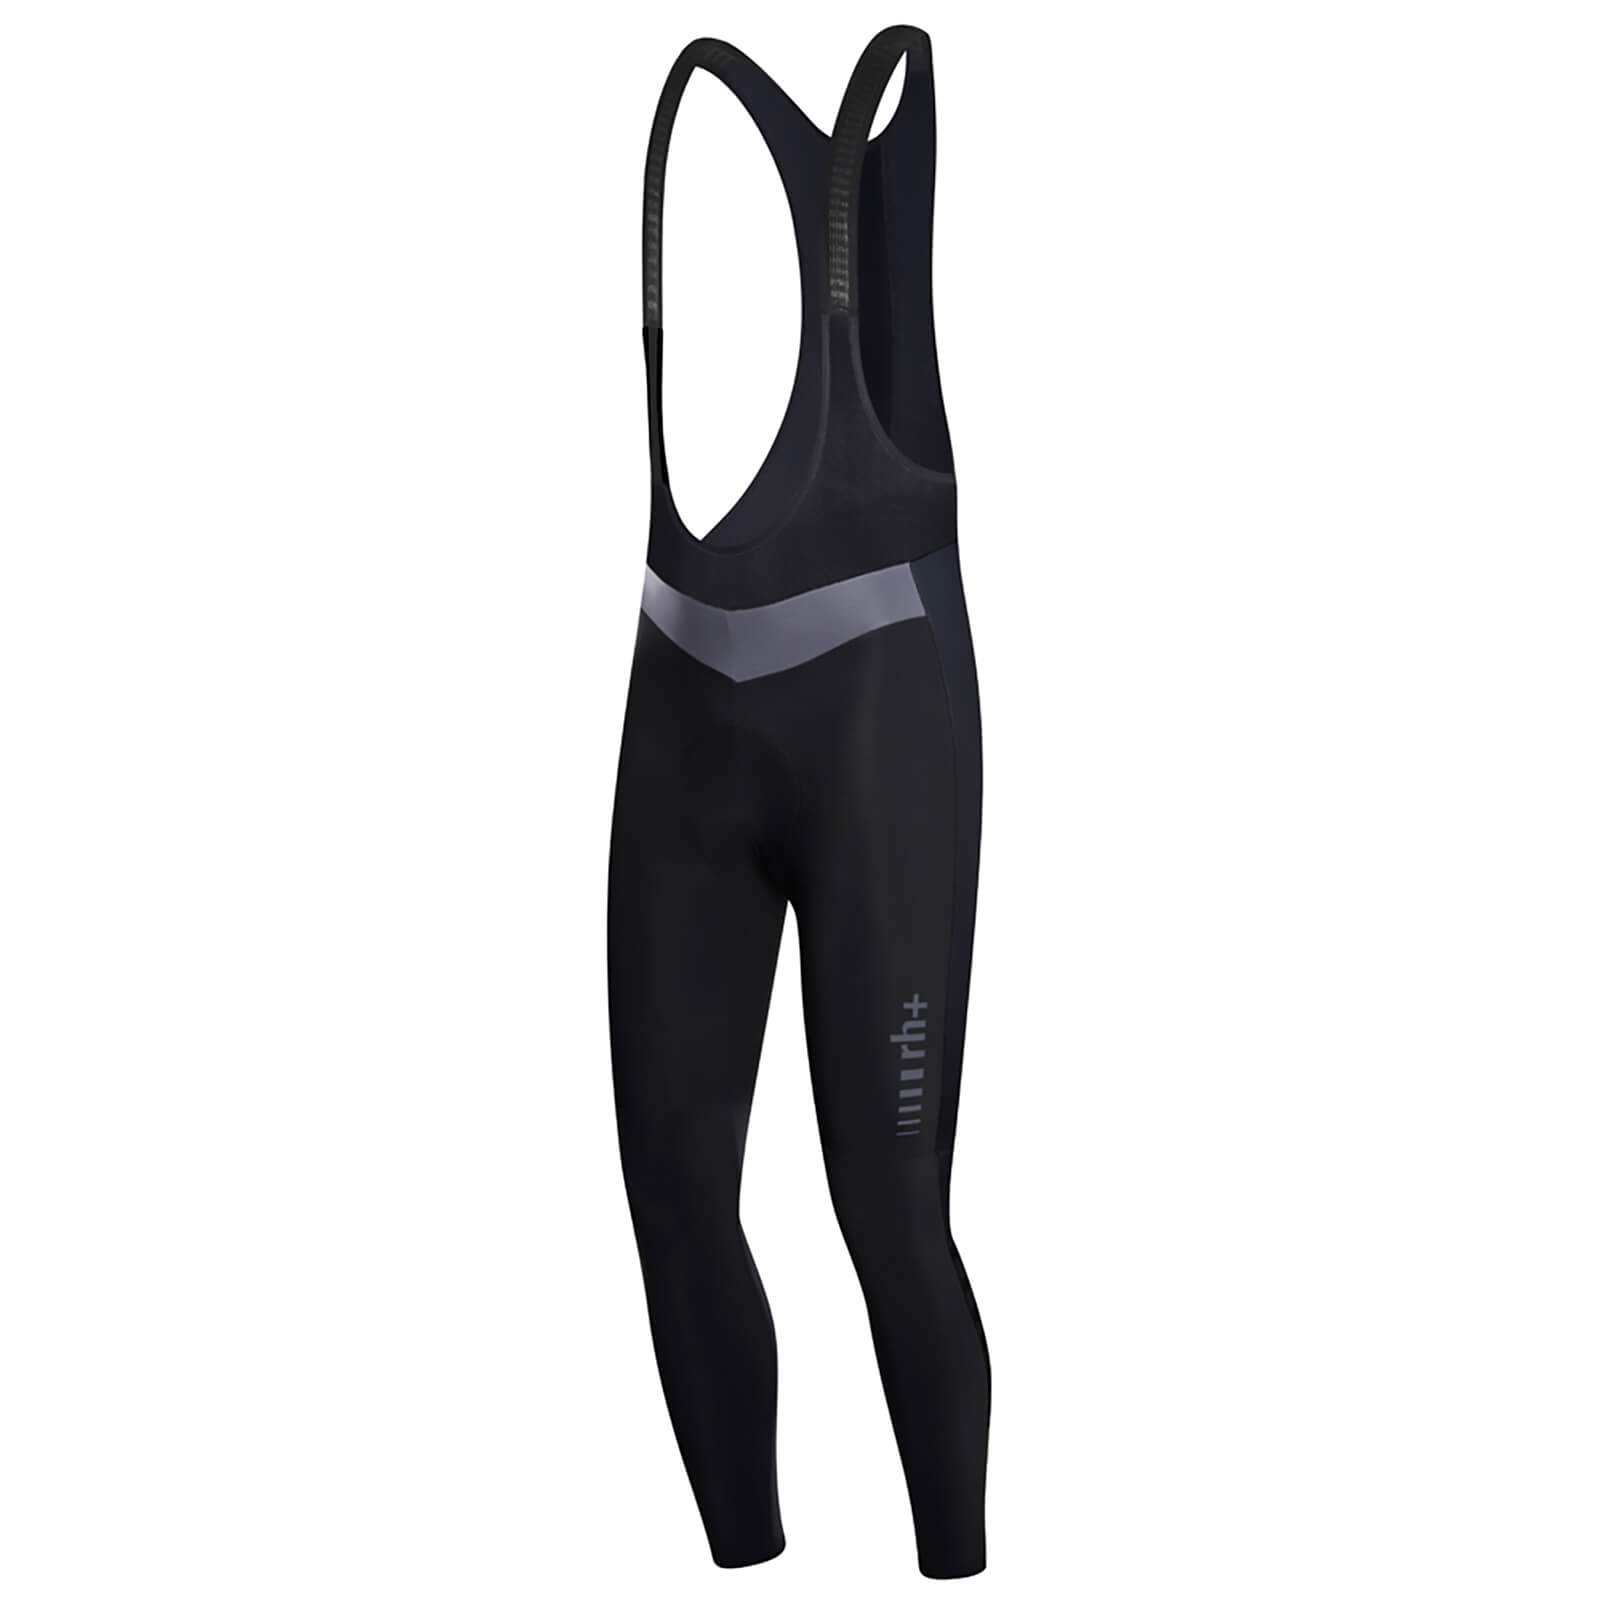 RH+ Logo EVO Bib Tights - Black/Anthracite